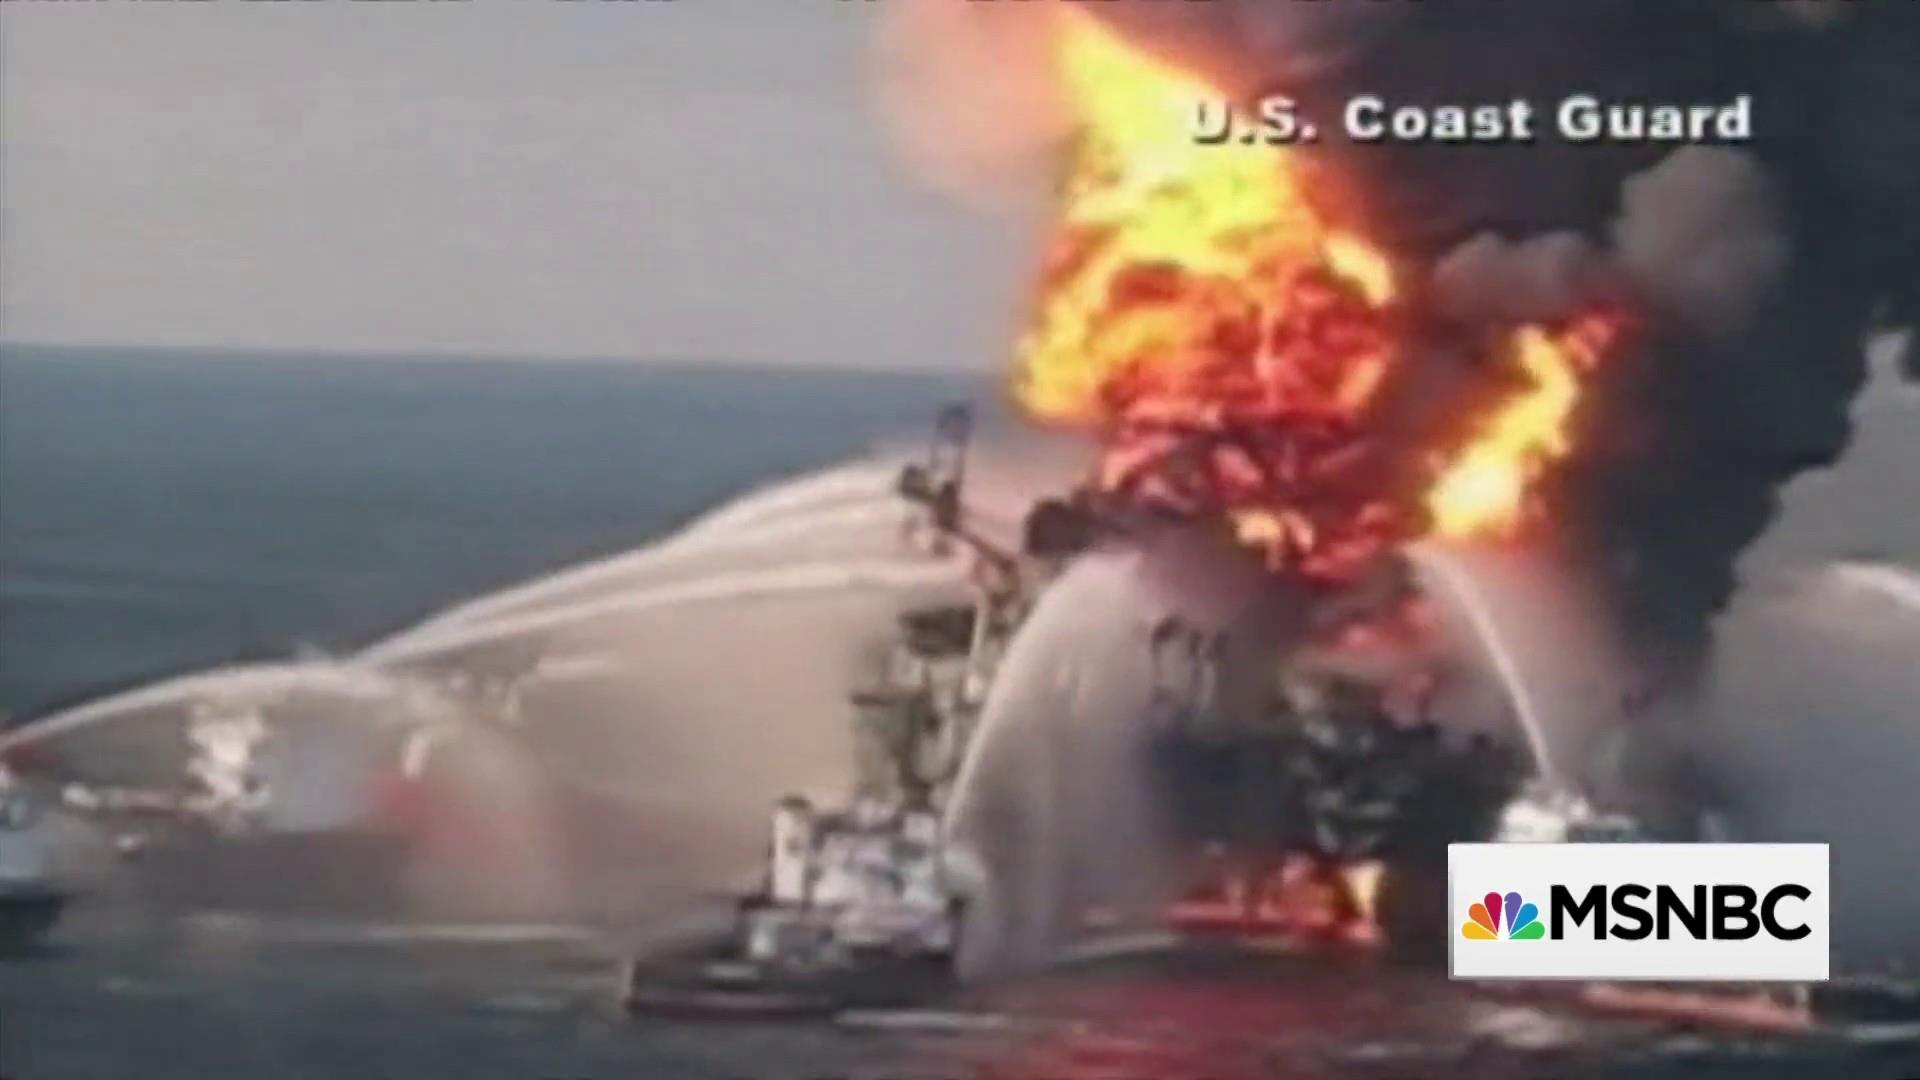 GOP gifts to big oil ignore past disasters